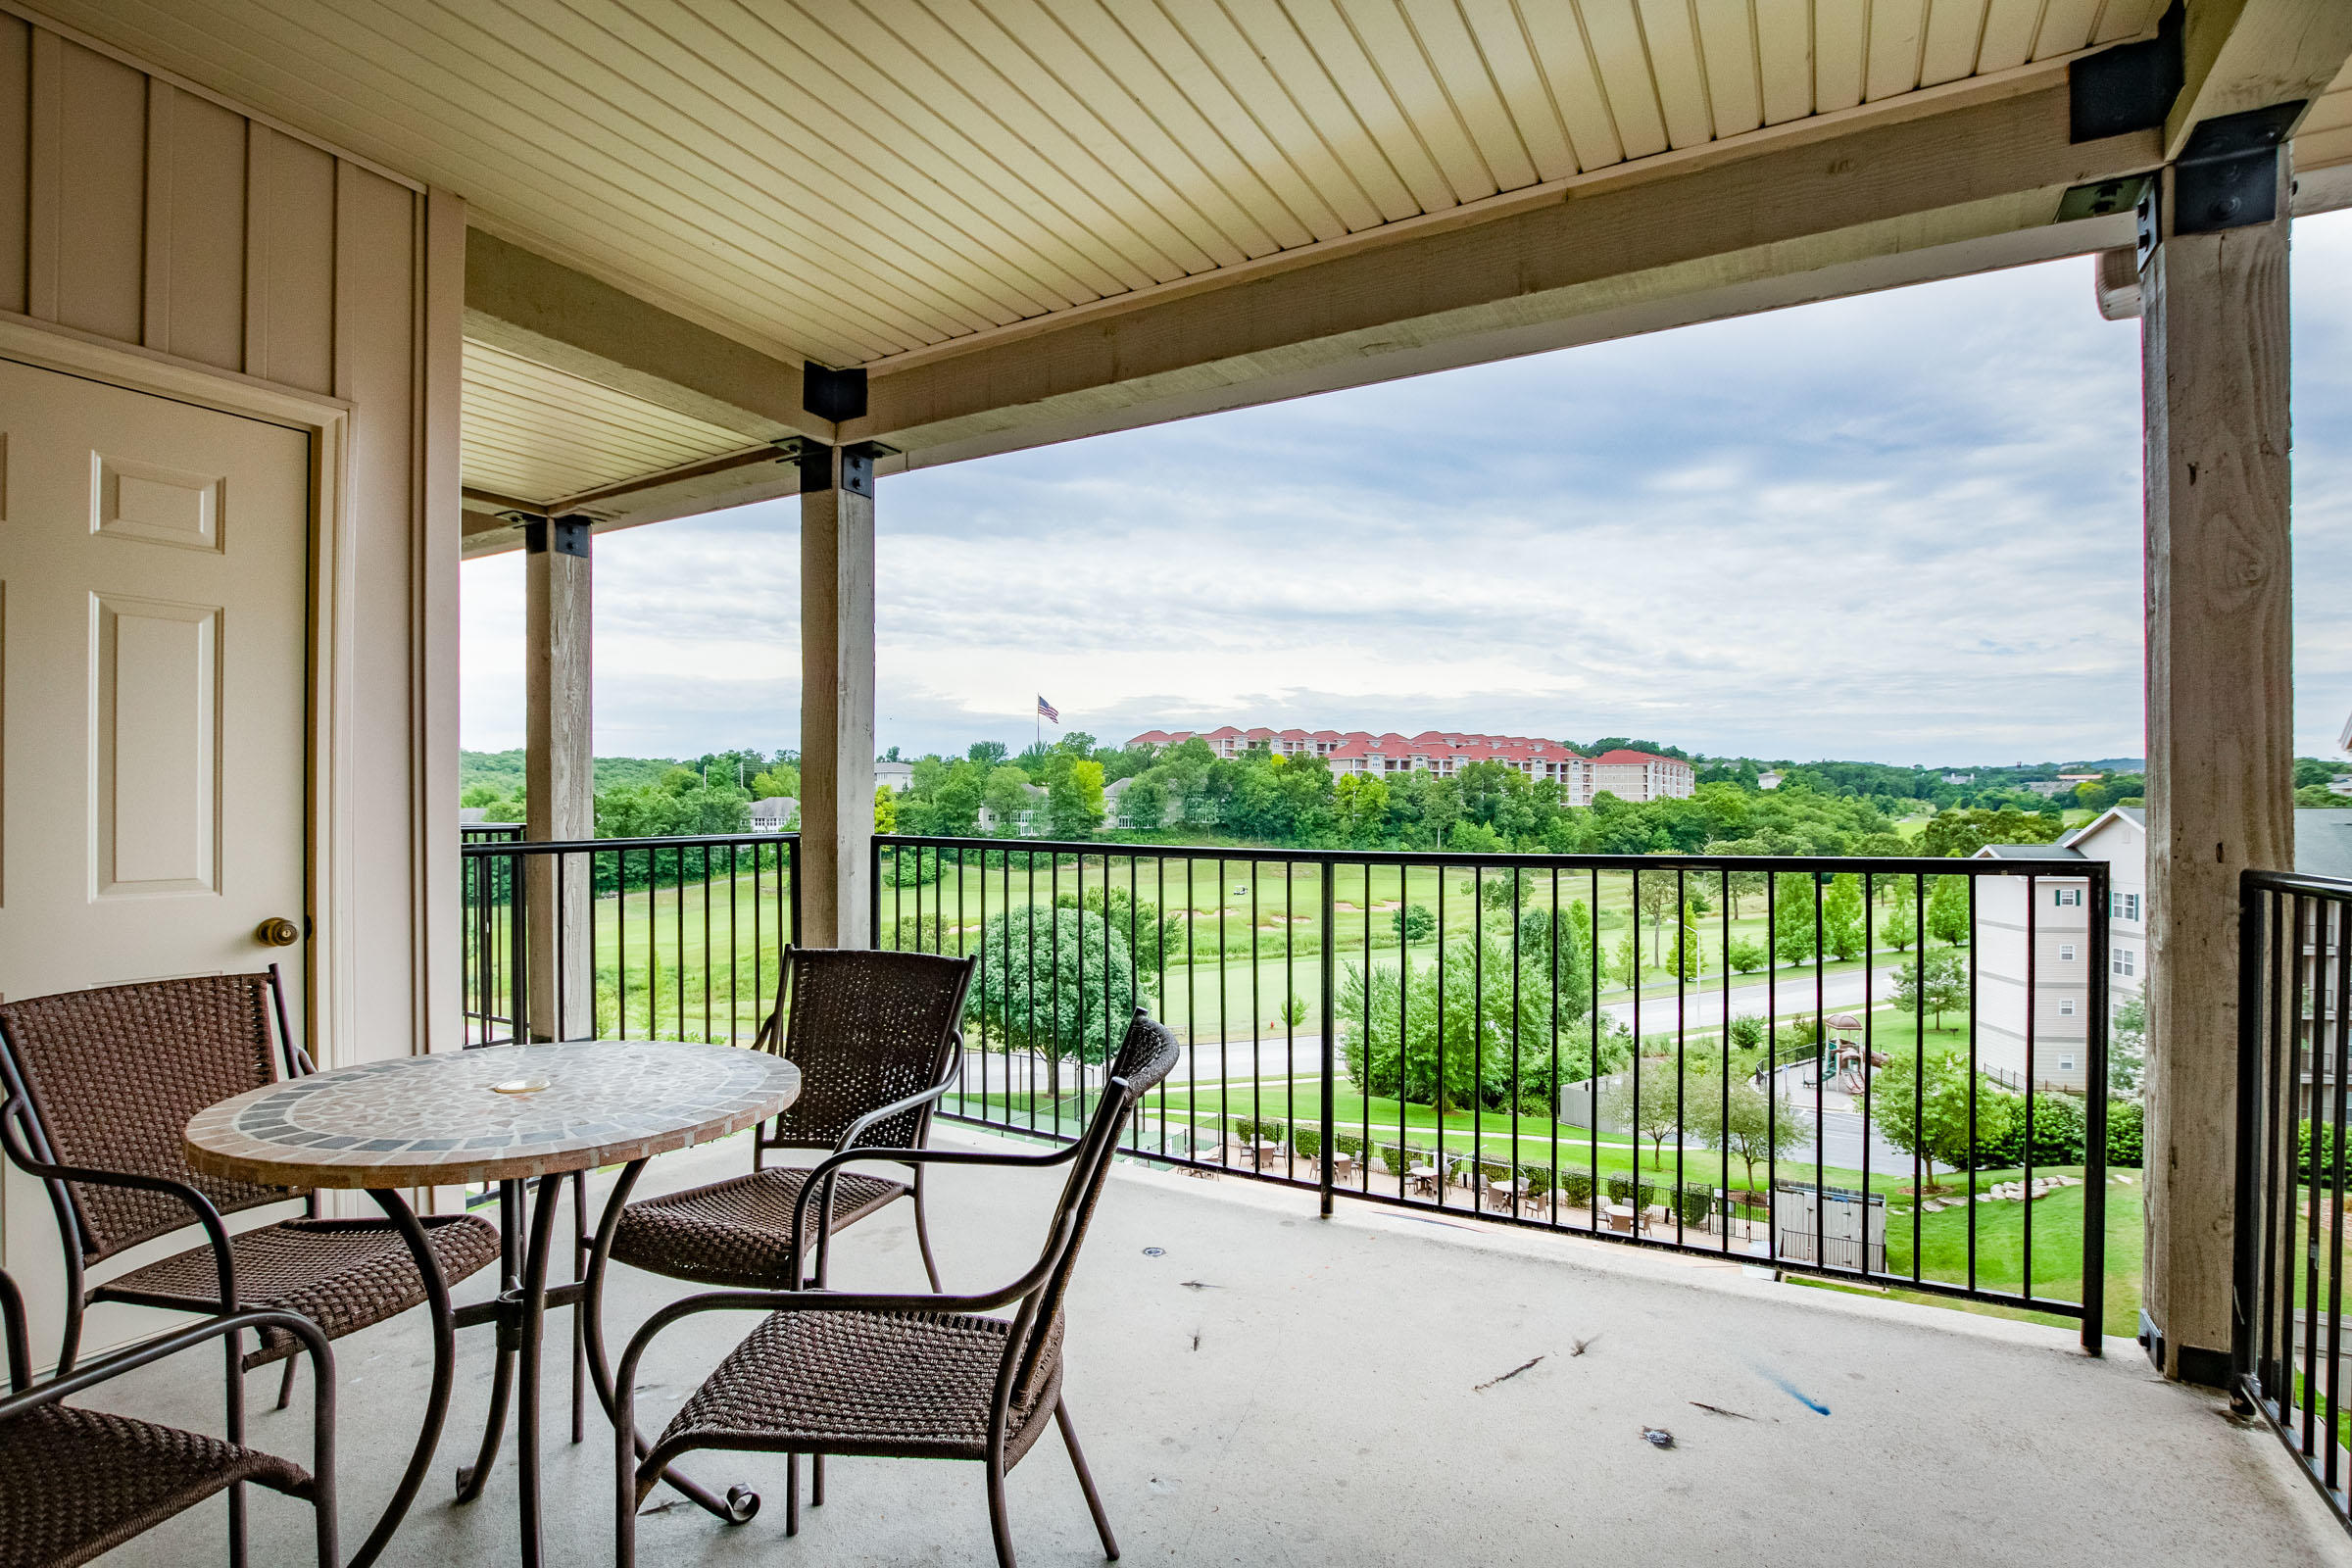 330 South Wildwood Drive UNIT 7 Branson, MO 65616